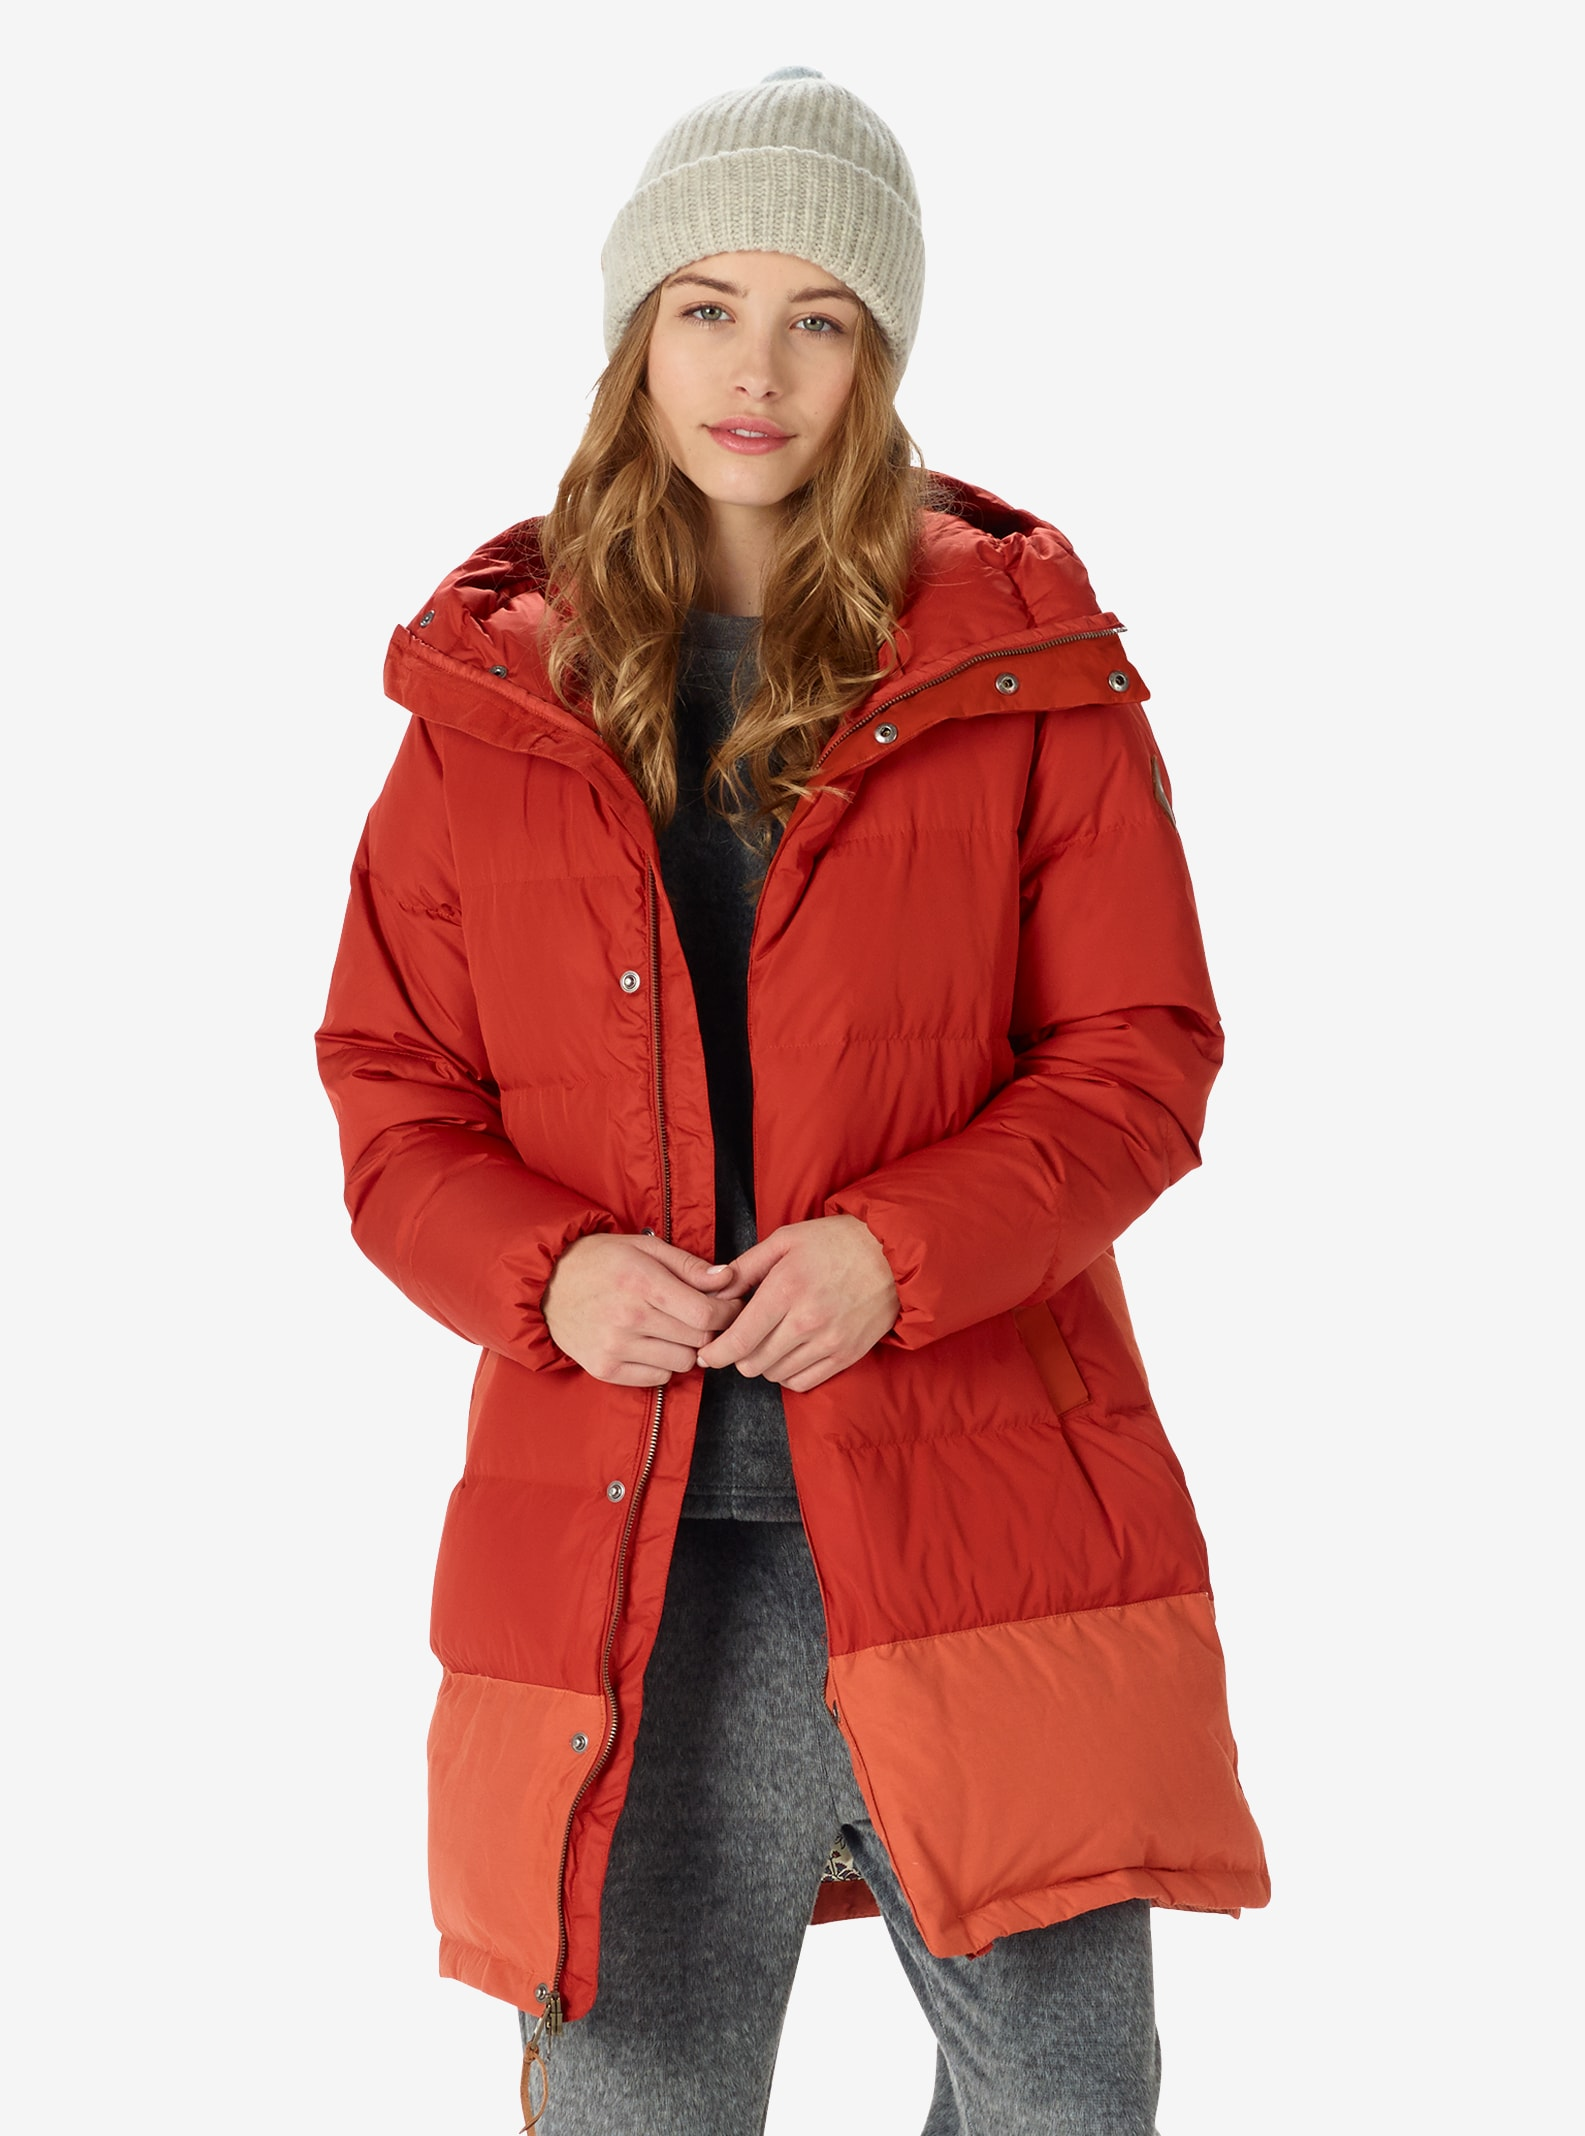 Women's Burton Nottaway Jacket shown in Bitters / Persimmon